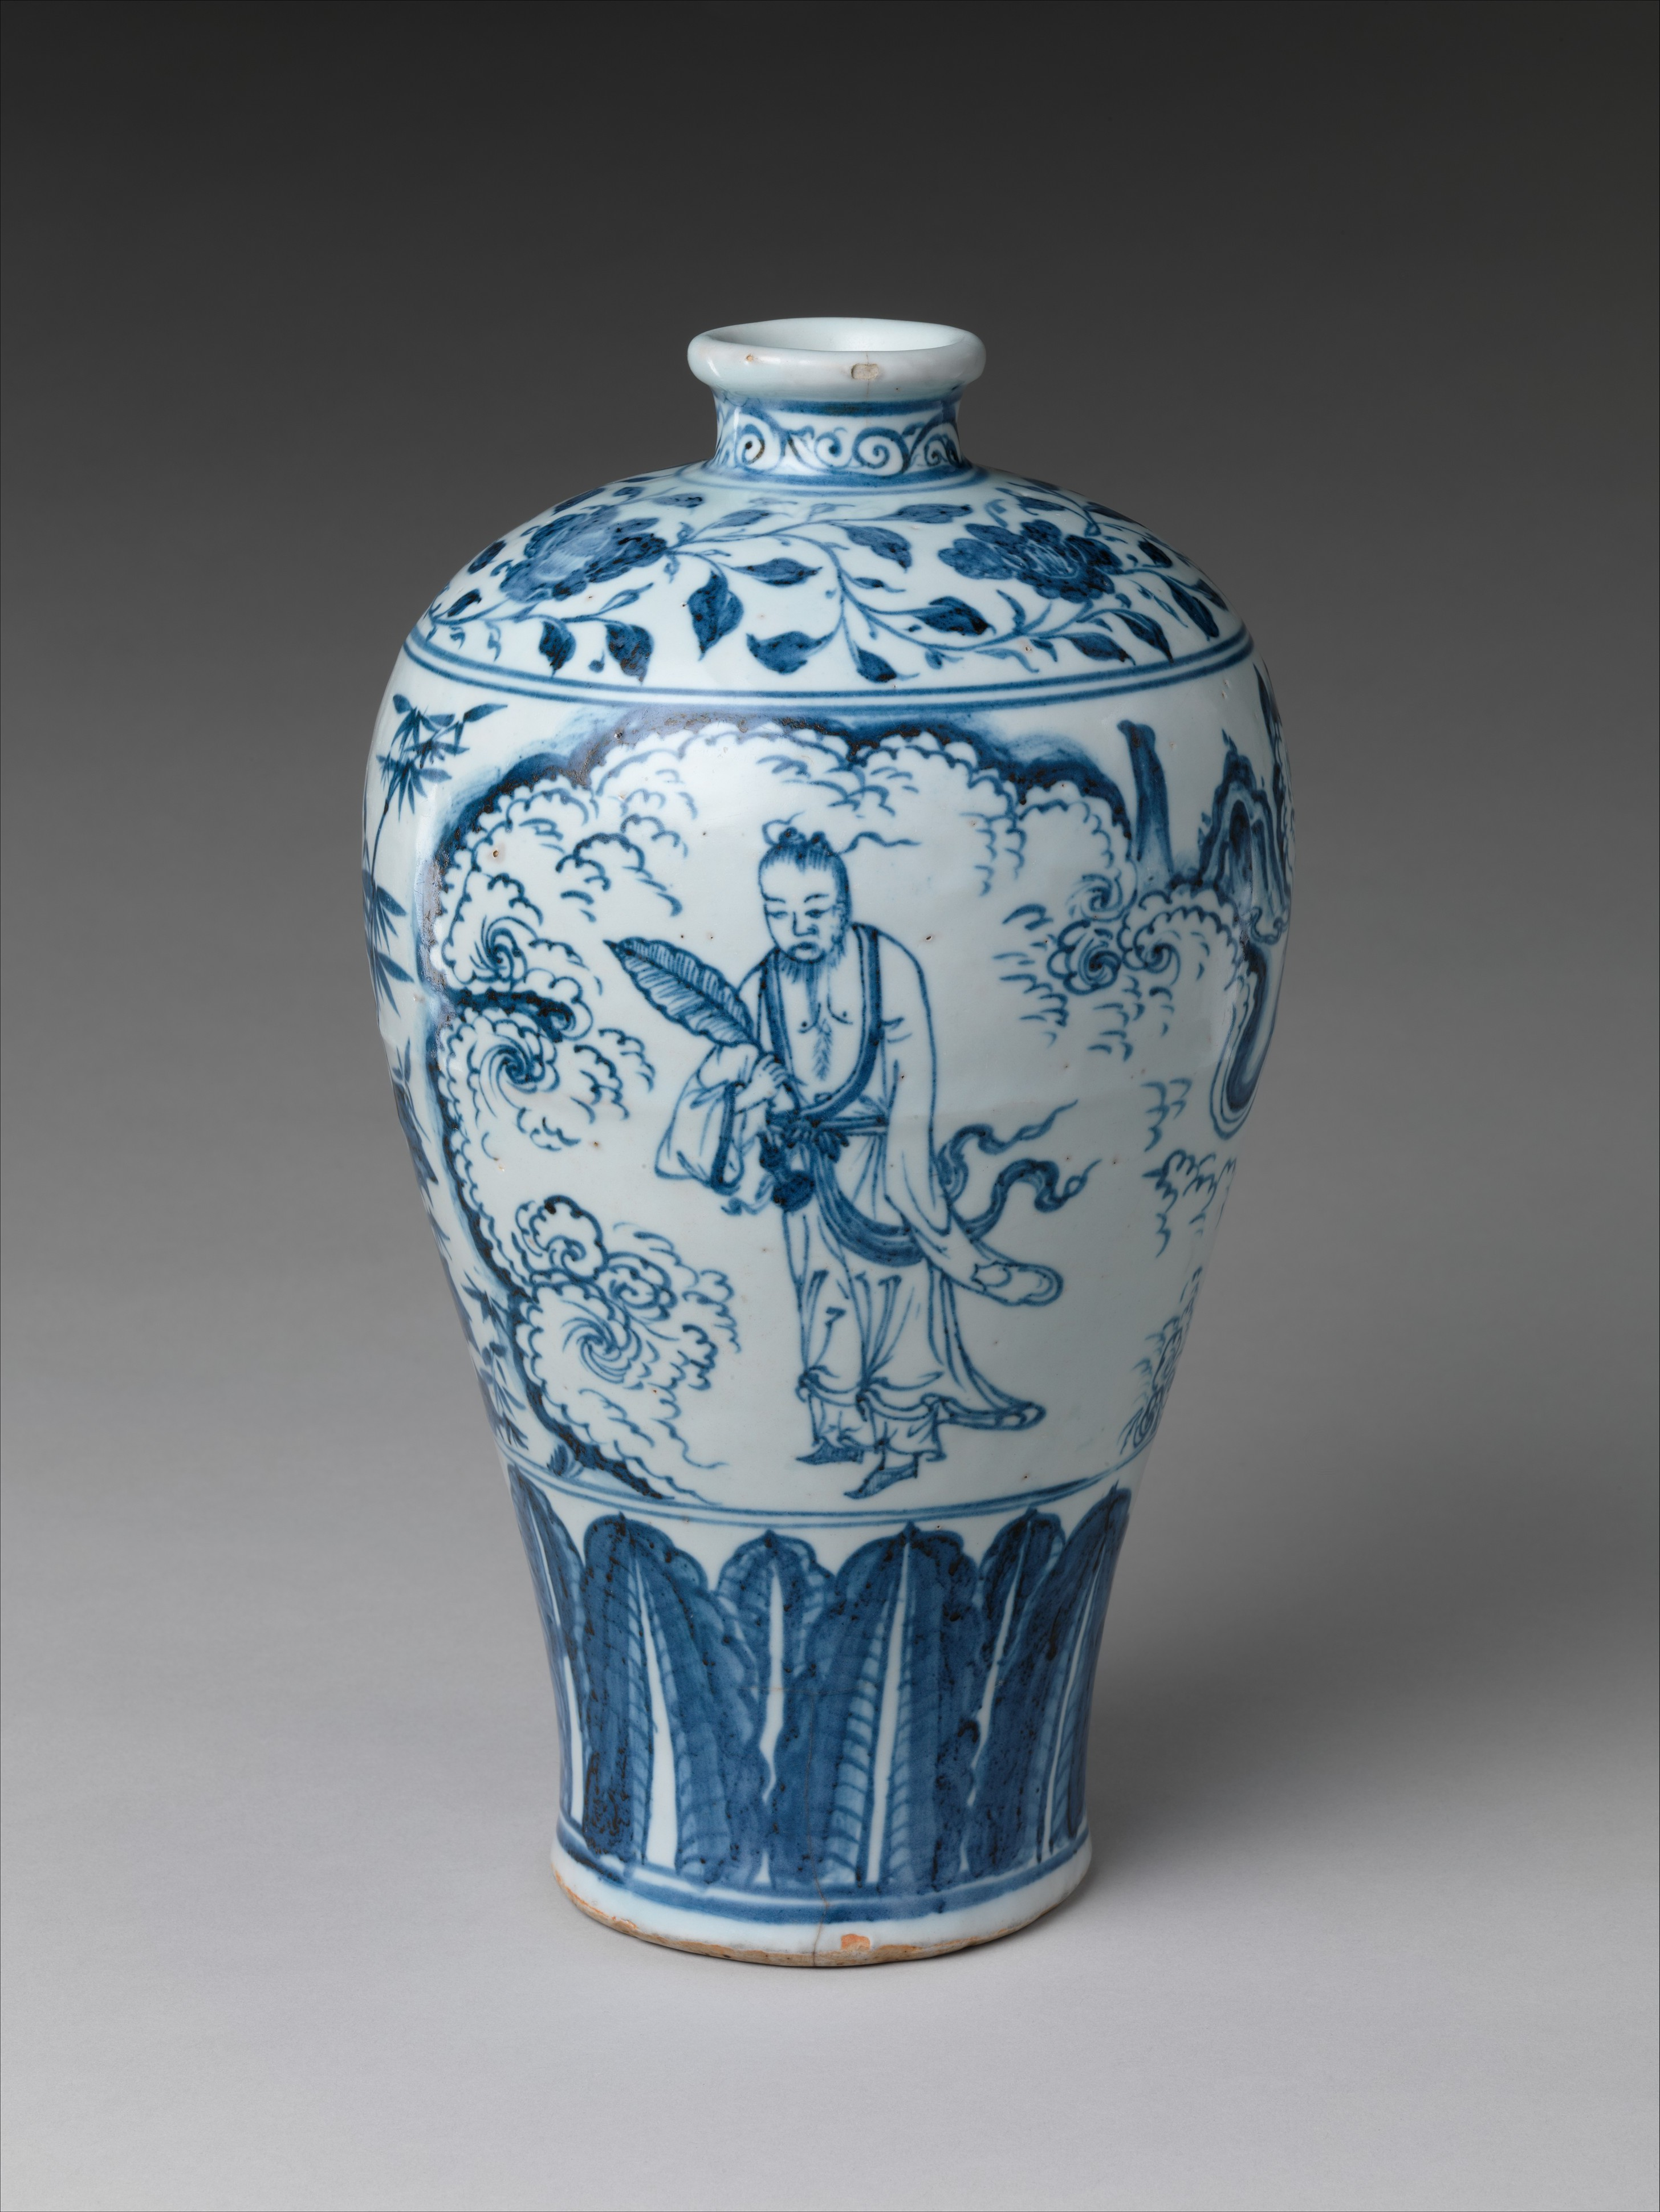 Vase china ming dynasty 13681644 xuande mark and period vase in meiping shape with daoist immortal zhongli quan reviewsmspy